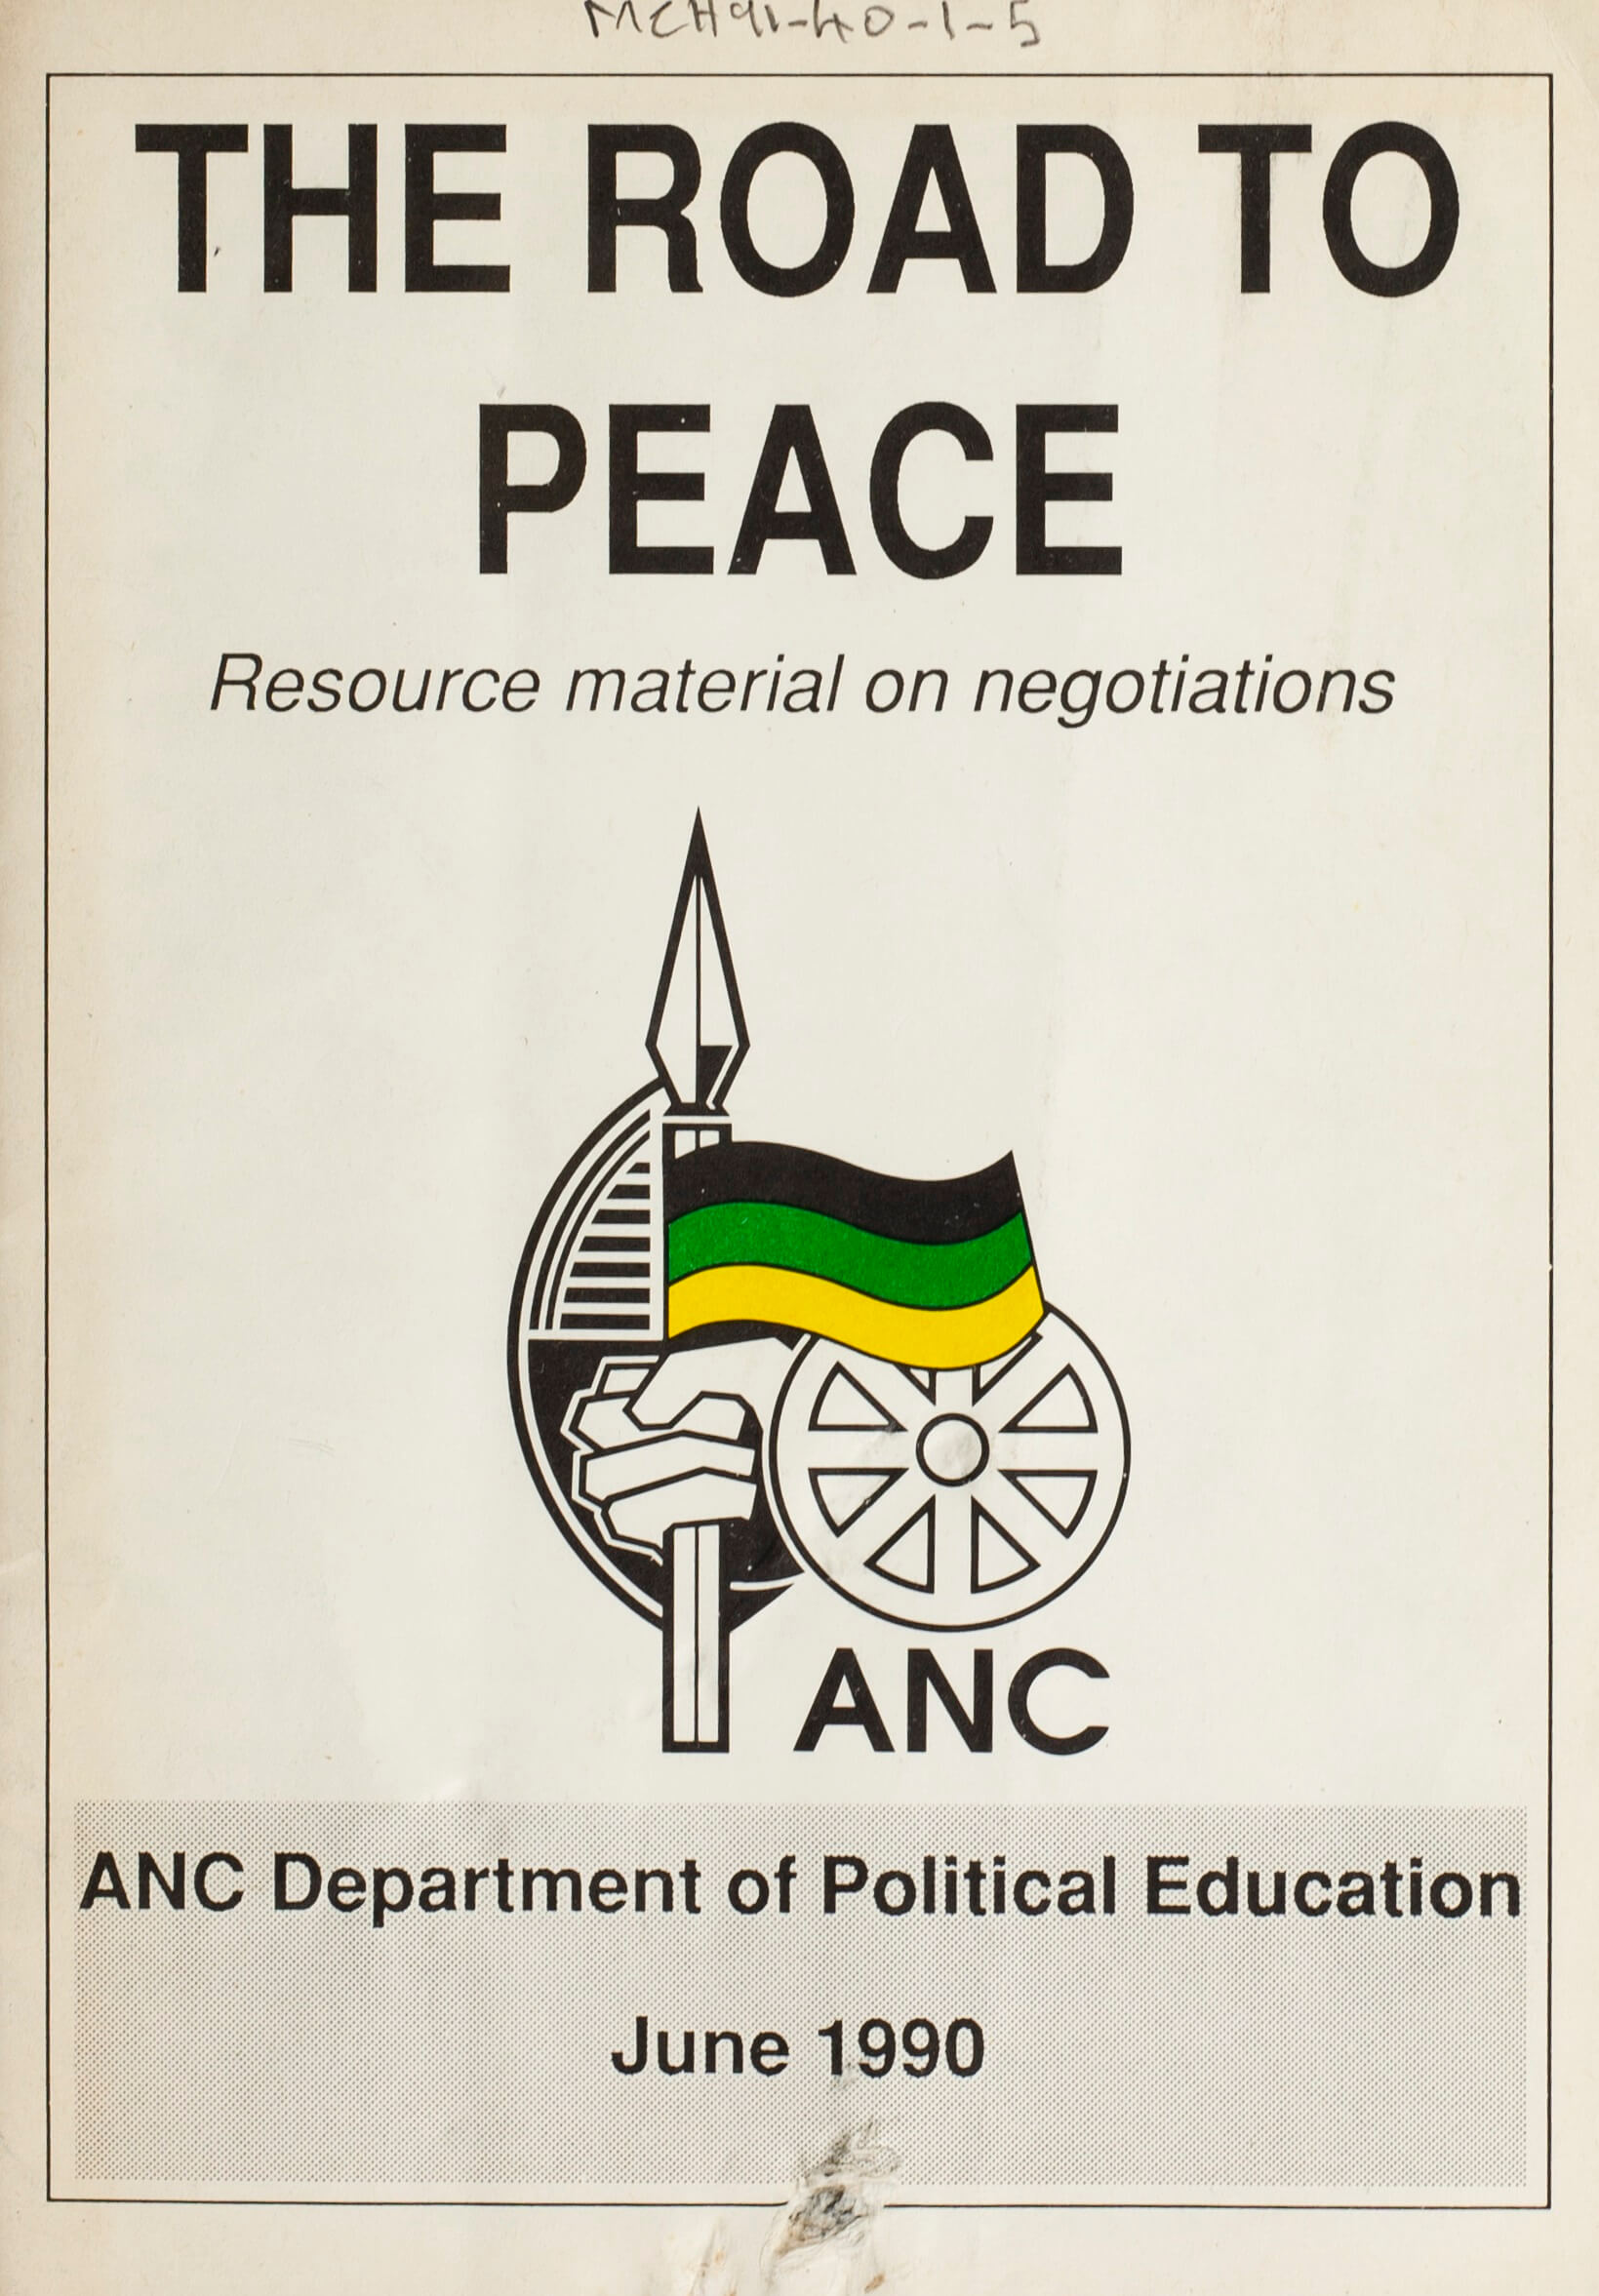 """""""The Road to Peace: Resource material on negotiations"""" produced by the ANC Department of Political Education, June 1990."""